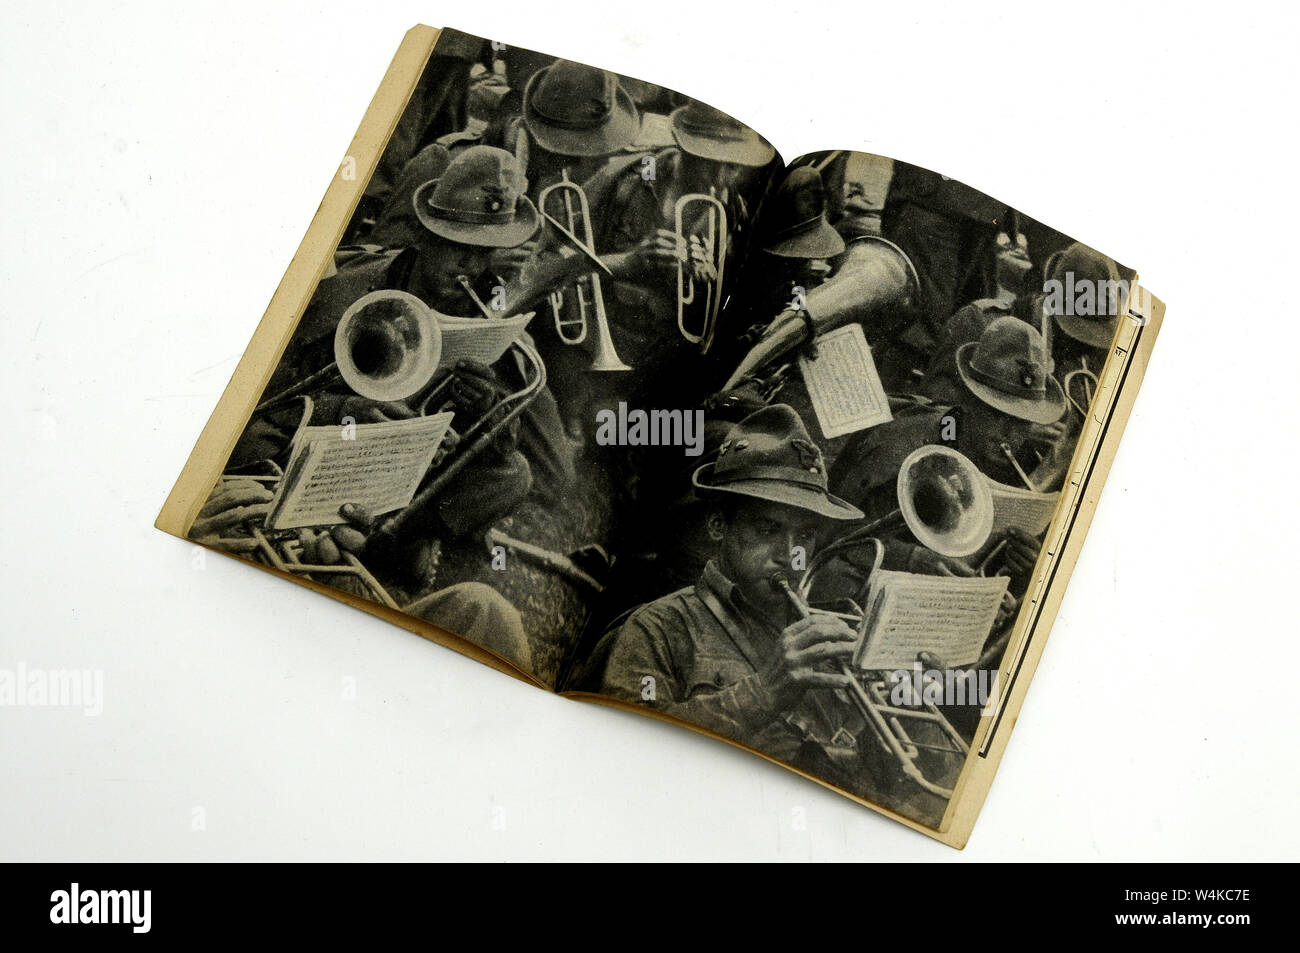 old fascist songs soldiers book Stock Photo: 261040850 - Alamy